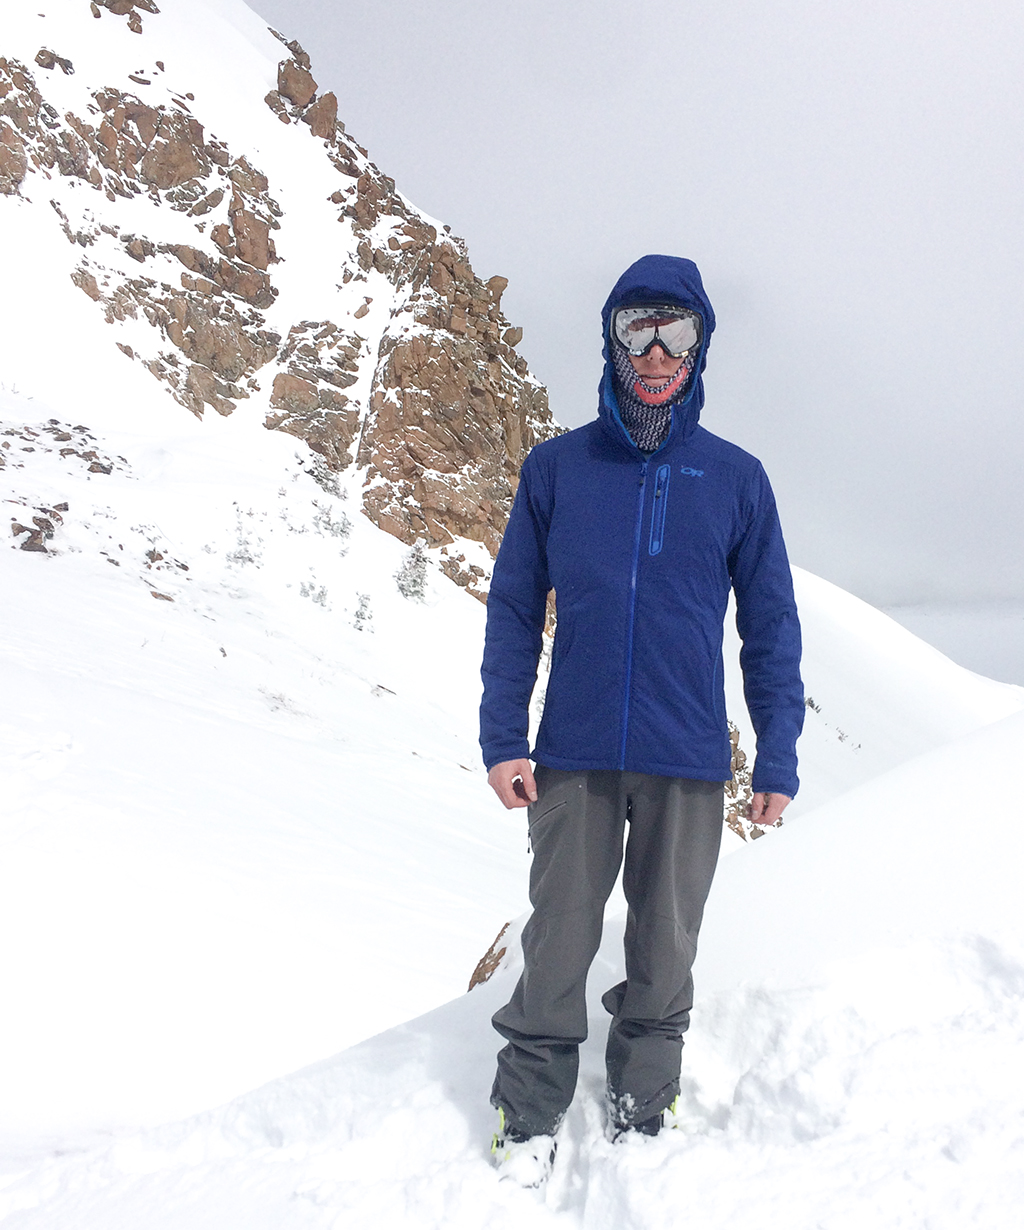 Sam Shaheen reviews the Outdoor Research Ascendant Jacket for Blister Gear Review.